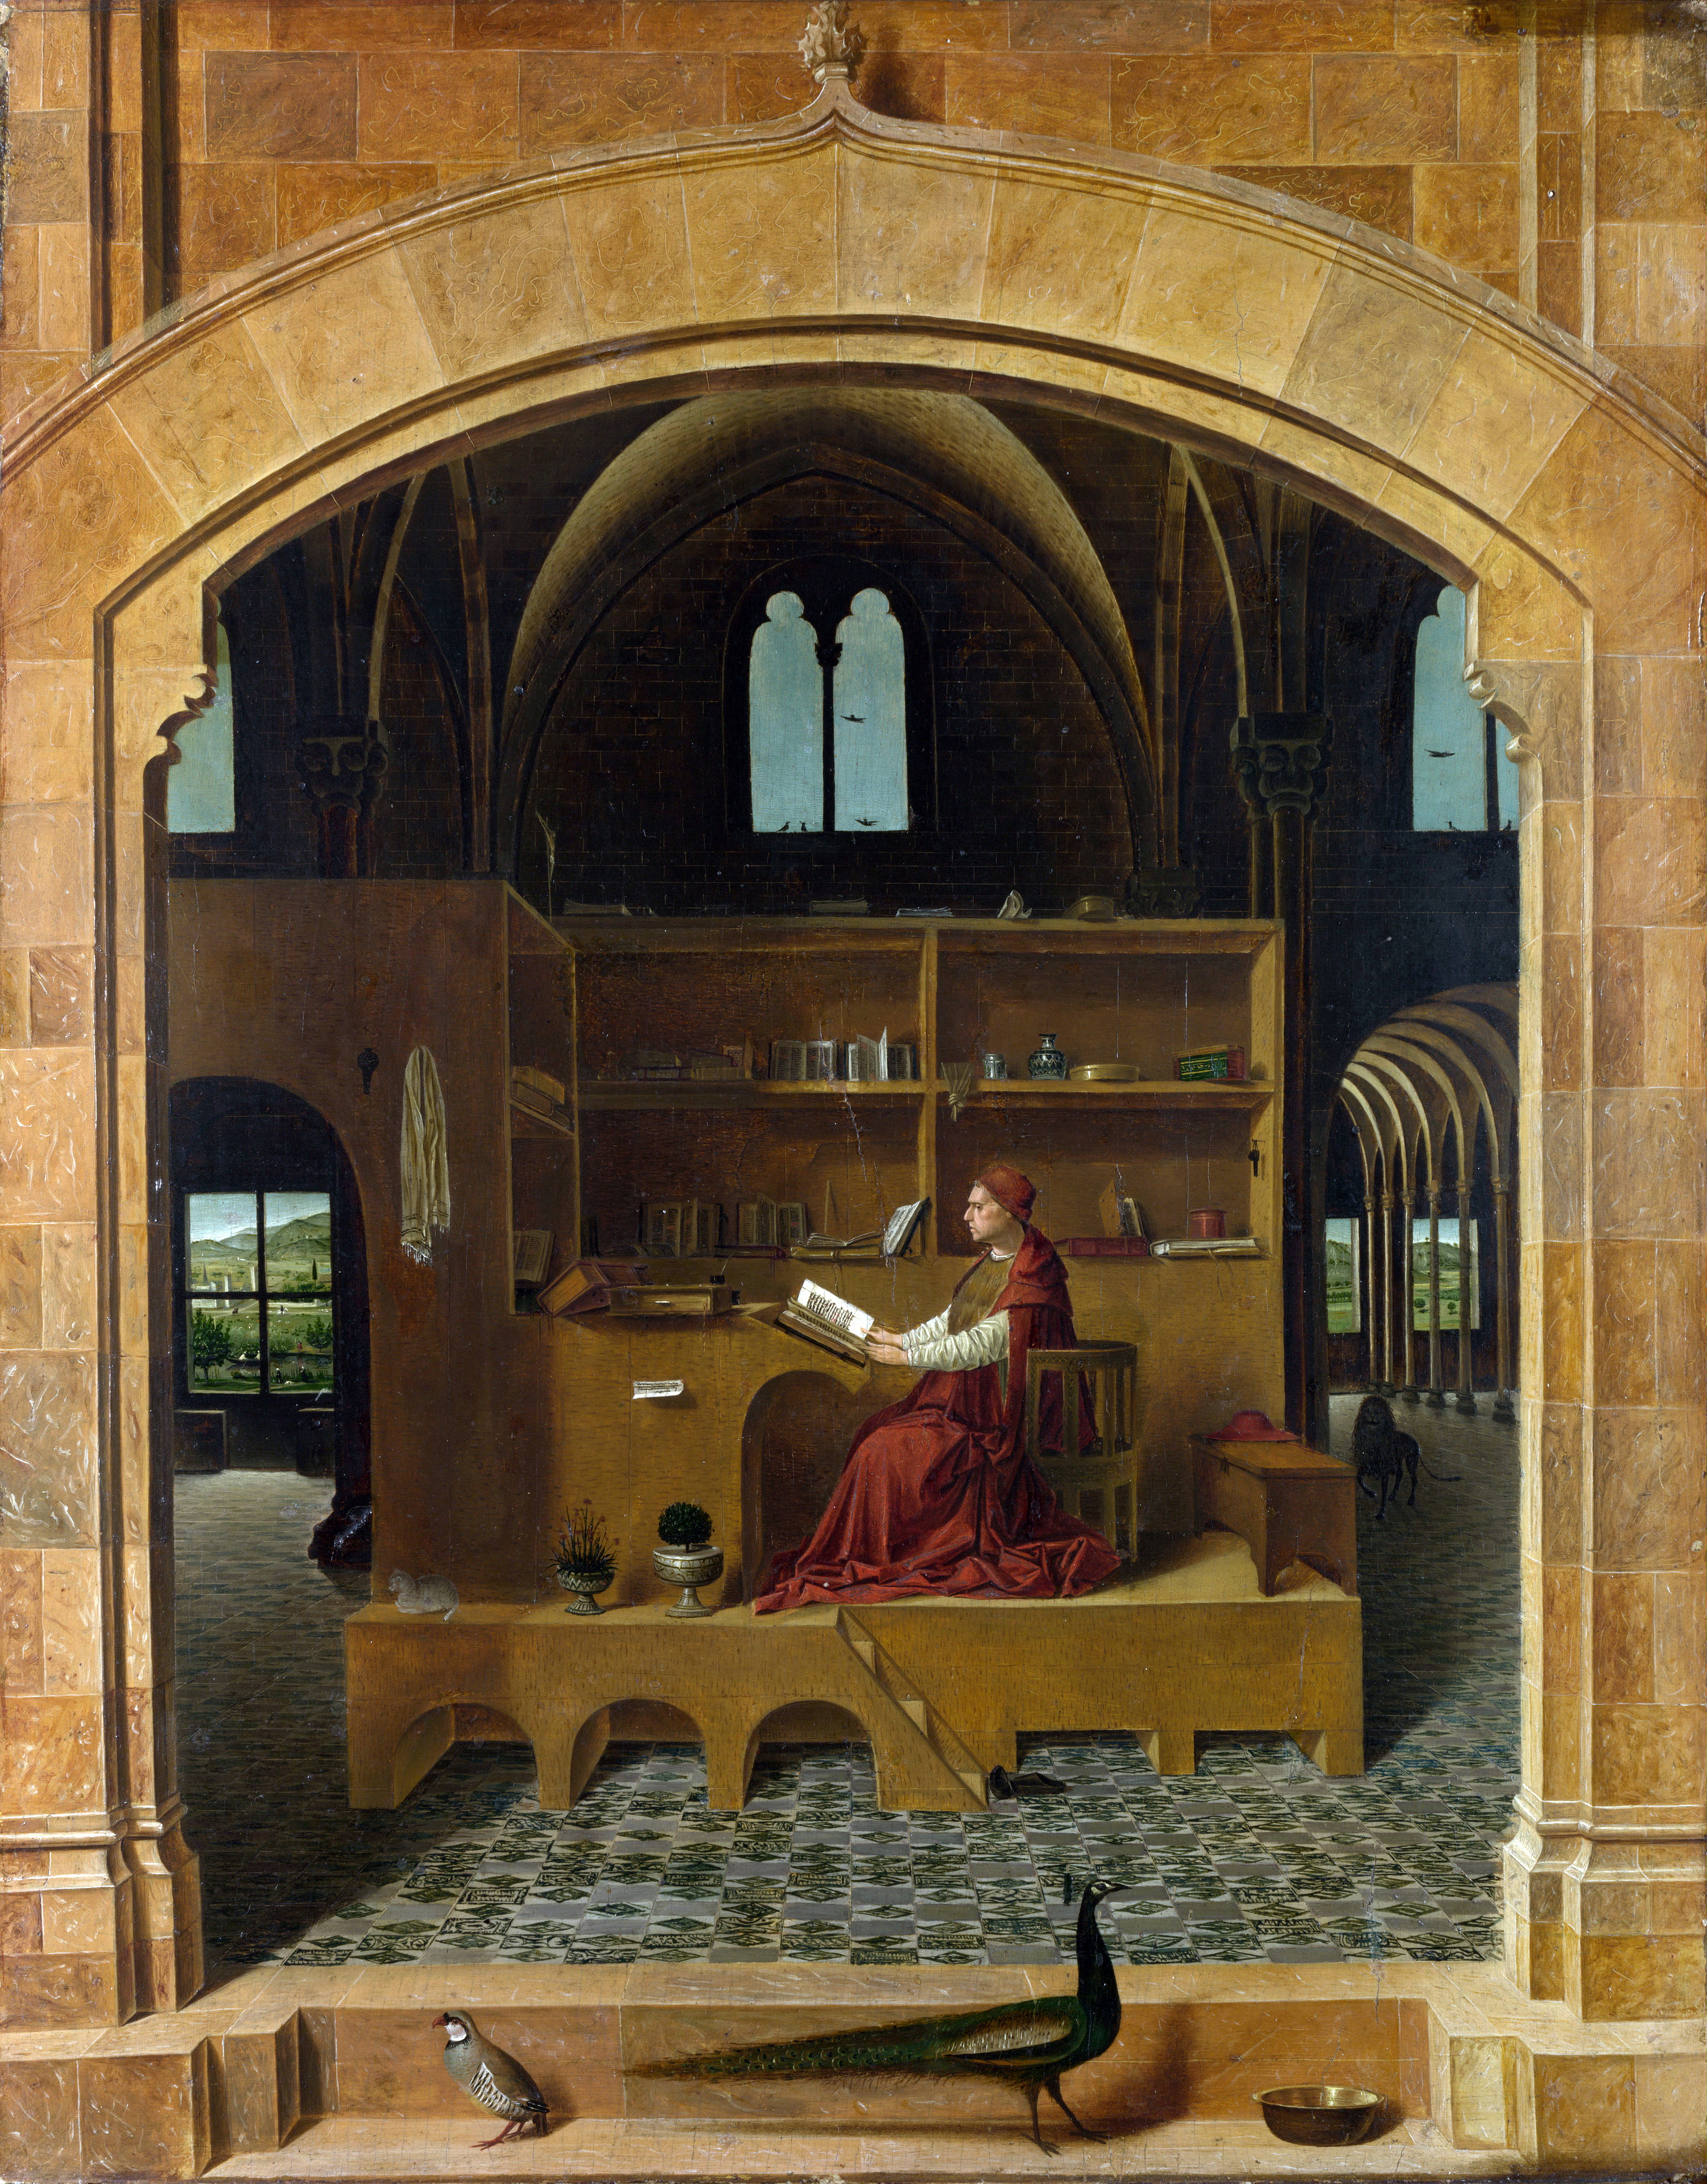 Saint Jerome in his Study Artist: Antonello da Messina Date made: about 1475 Source: http://www.nationalgalleryimages.co.uk/ Contact: picture.library@nationalgallery.co.uk Copyright © The National Gallery, London